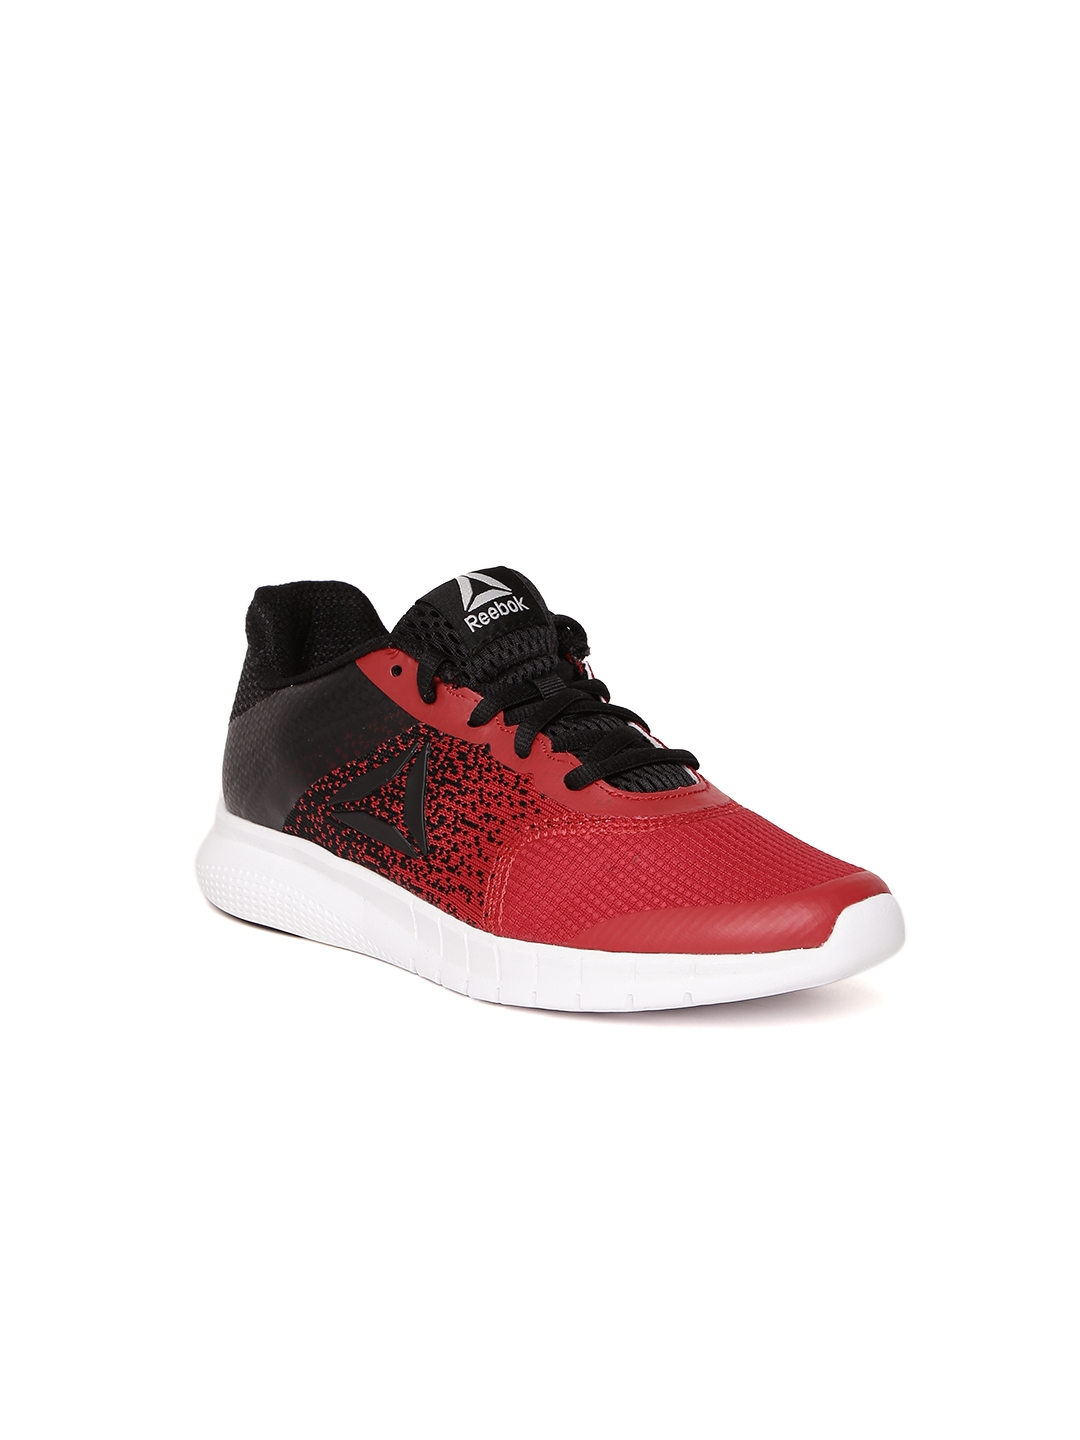 80673e11d Buy reebok shoes design | Up to 40% Discounts